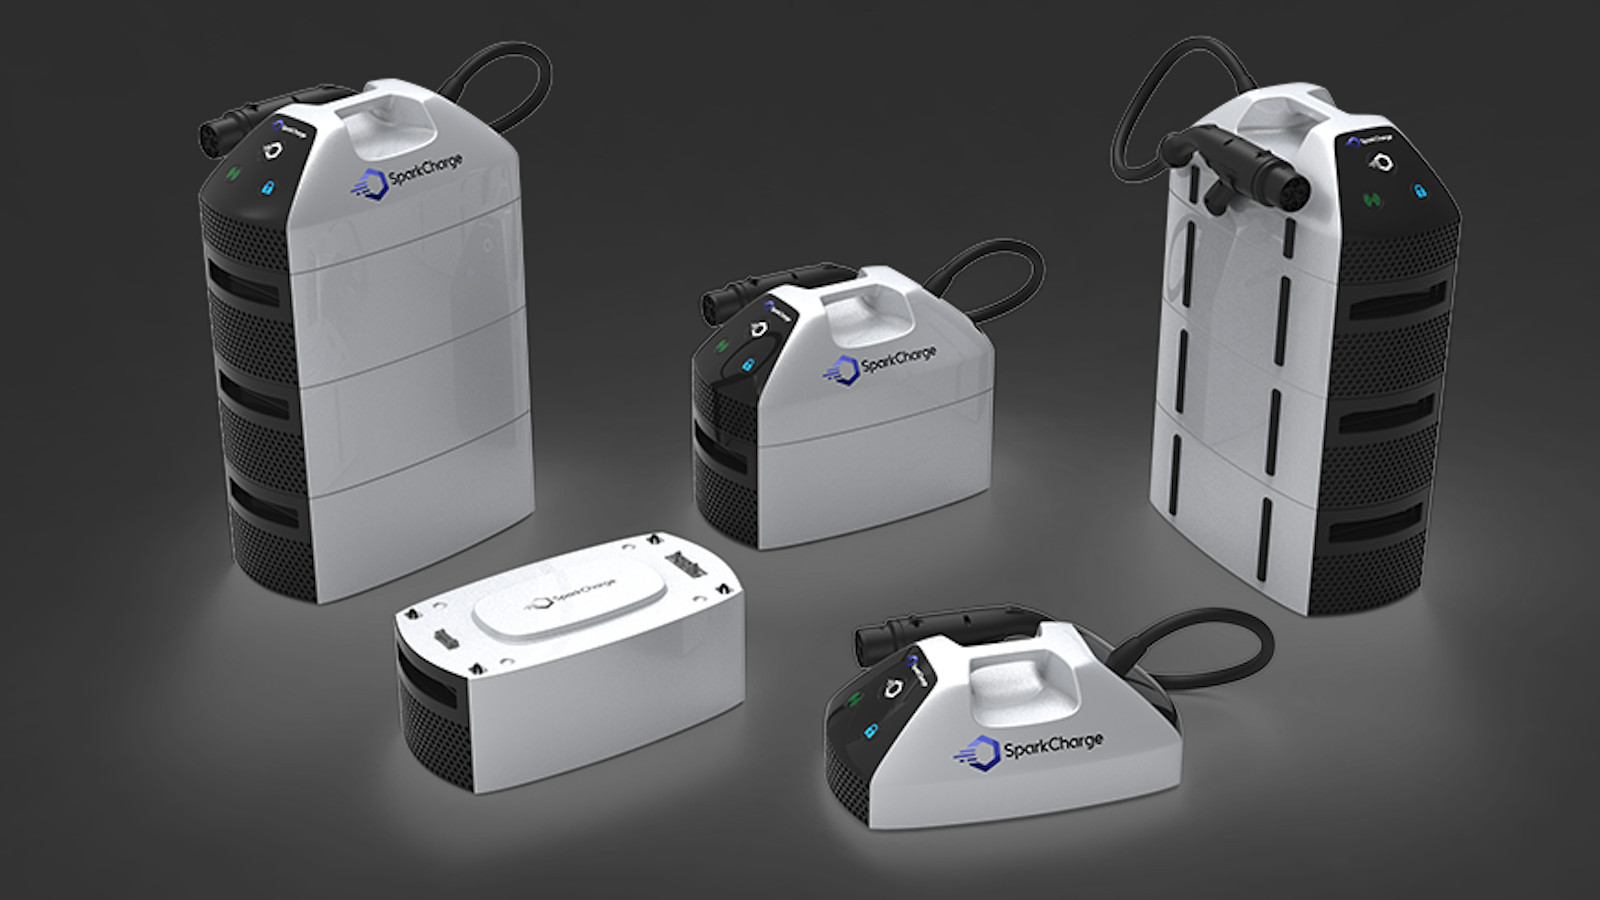 sparkcharge-modular-fast-charging-system_100708361_h.jpg